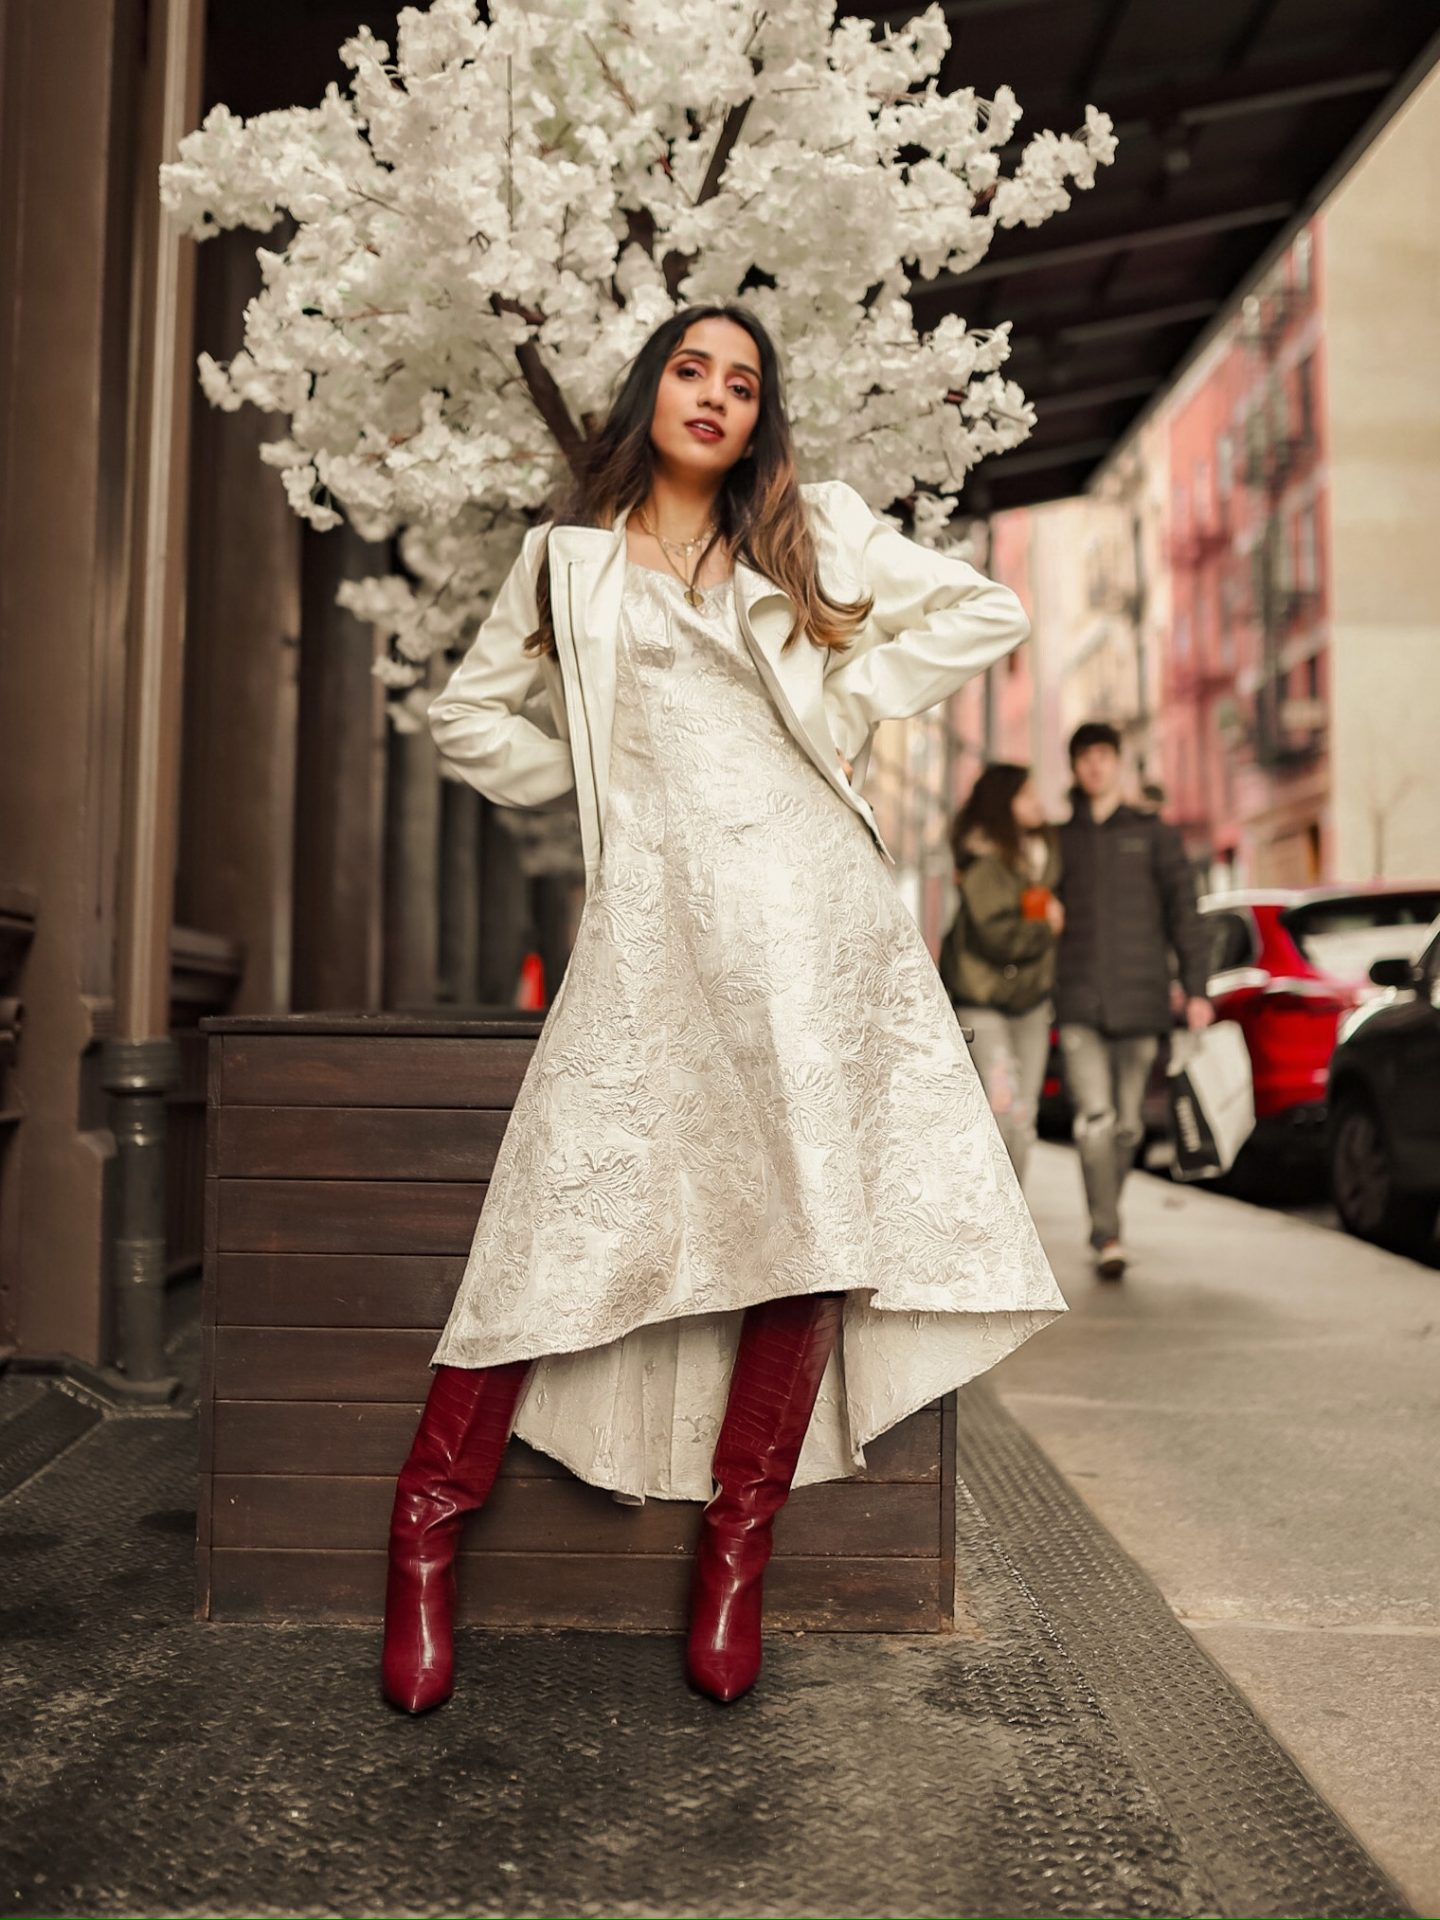 My Fashion Week Looks are Here! | NYFW Fall-Winter 2020 faiza inam fashion style my new york fashion week day look 2 second